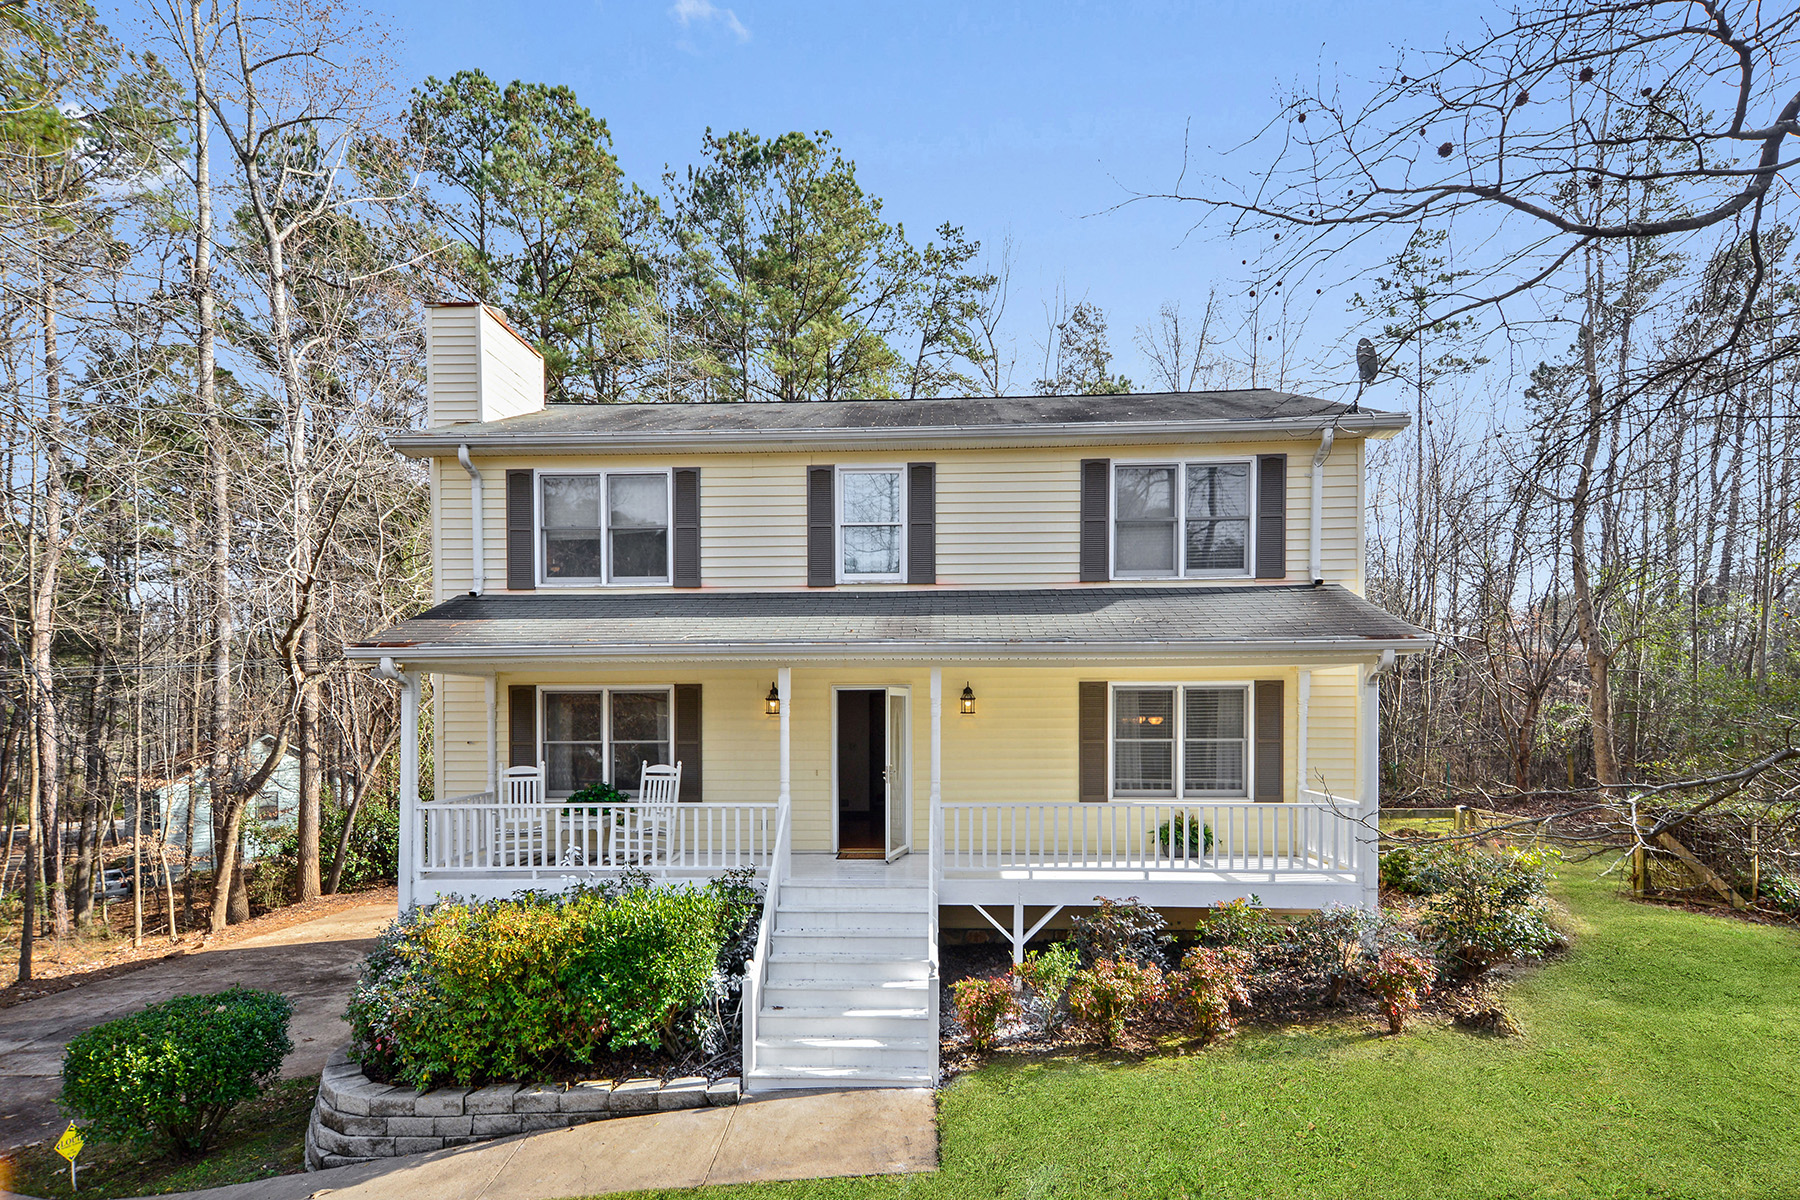 Single Family Home for Sale at Charming Cap Cod Home New Victoria Harbour Marina 705 Emerald Ridge Woodstock, Georgia 30189 United States